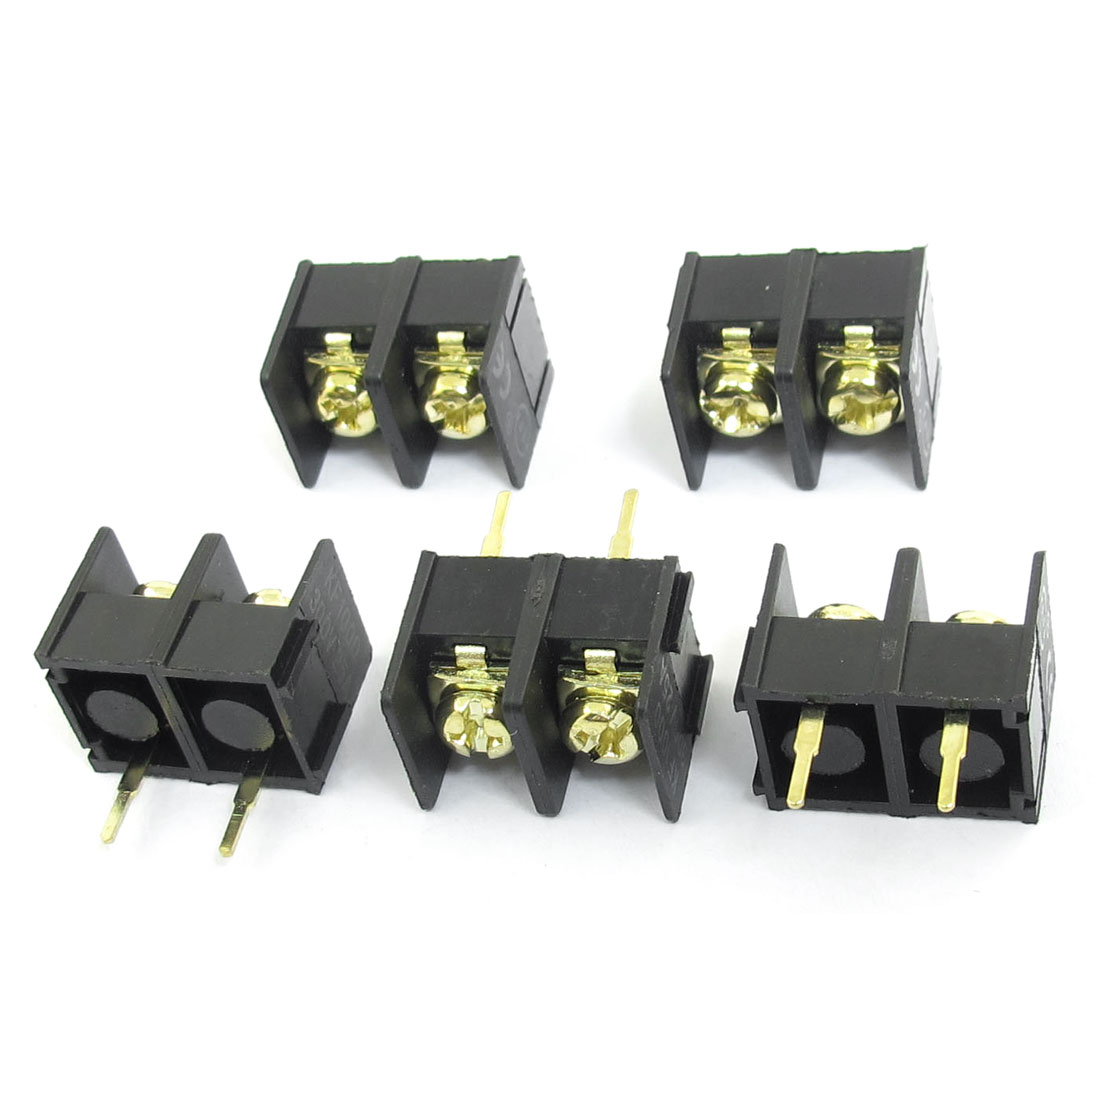 5pcs 300V 25A 2 Position 9.5mm Pitch Single Row PCB Board Black Screw Terminal Barrier Block Connector